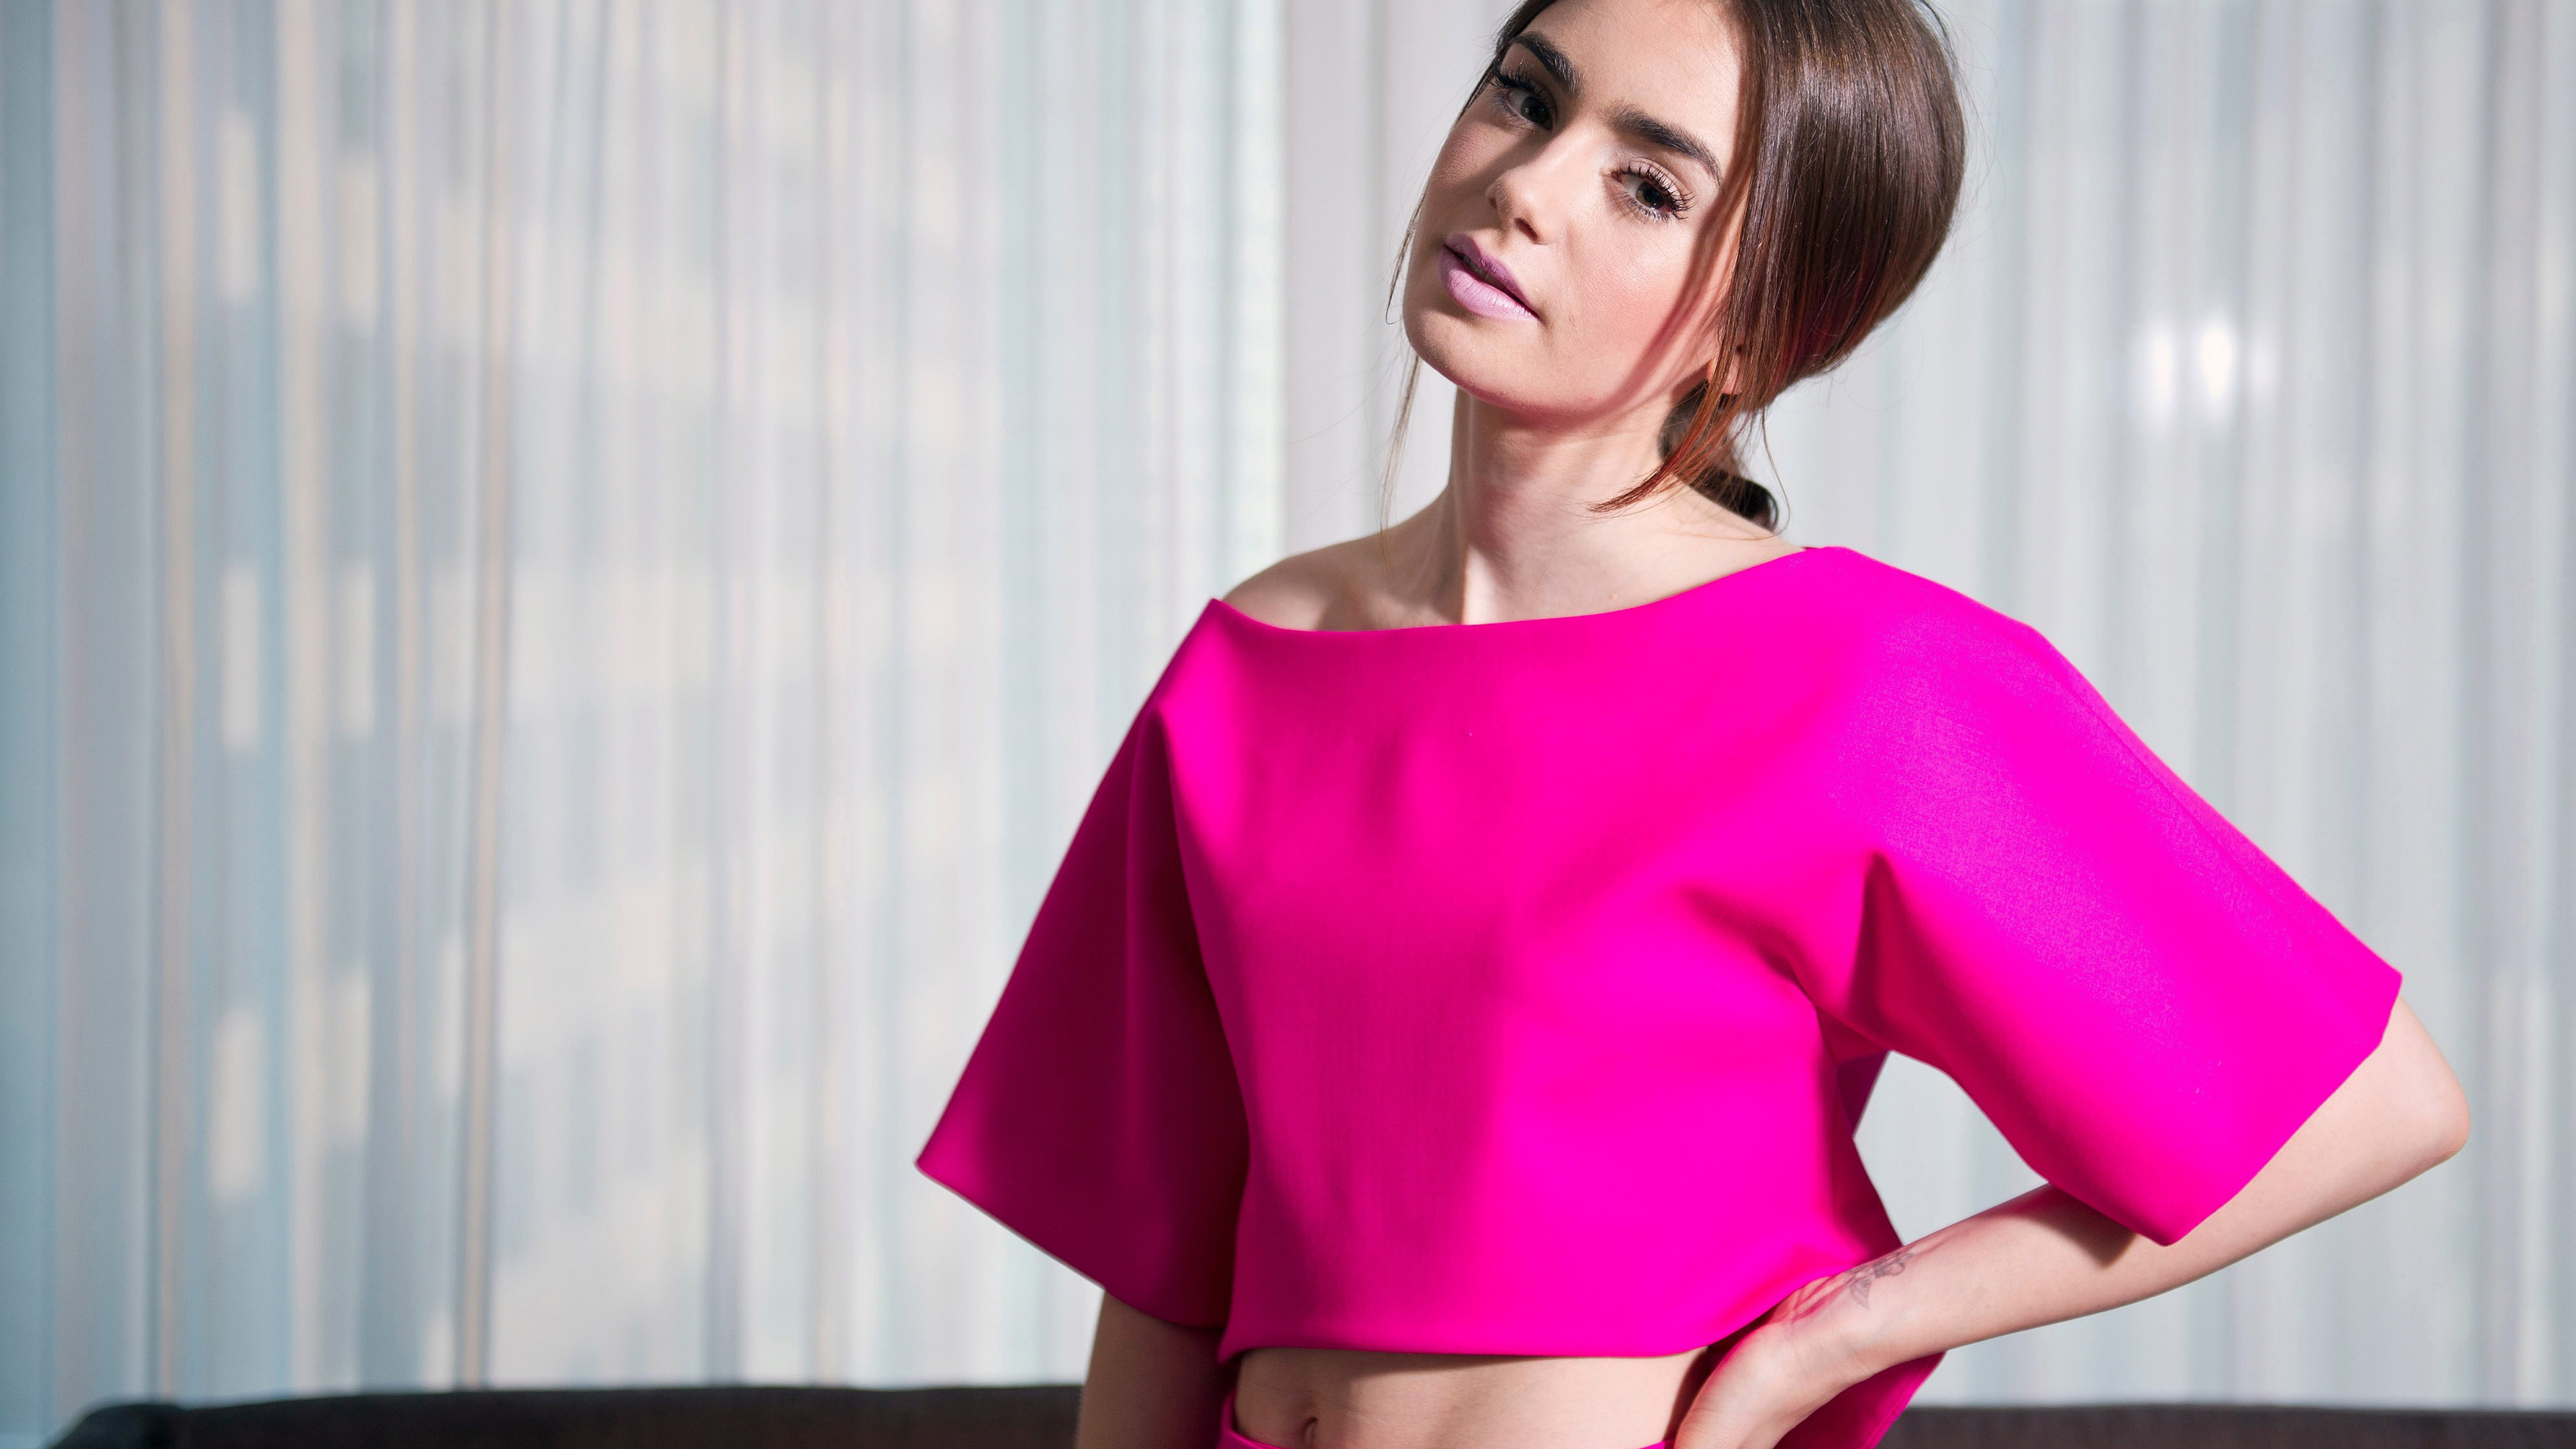 lily collins 4k 2018 1536859752 - Lily Collins 4k 2018 - model wallpapers, lily collins wallpapers, hd-wallpapers, girls wallpapers, celebrities wallpapers, 4k-wallpapers